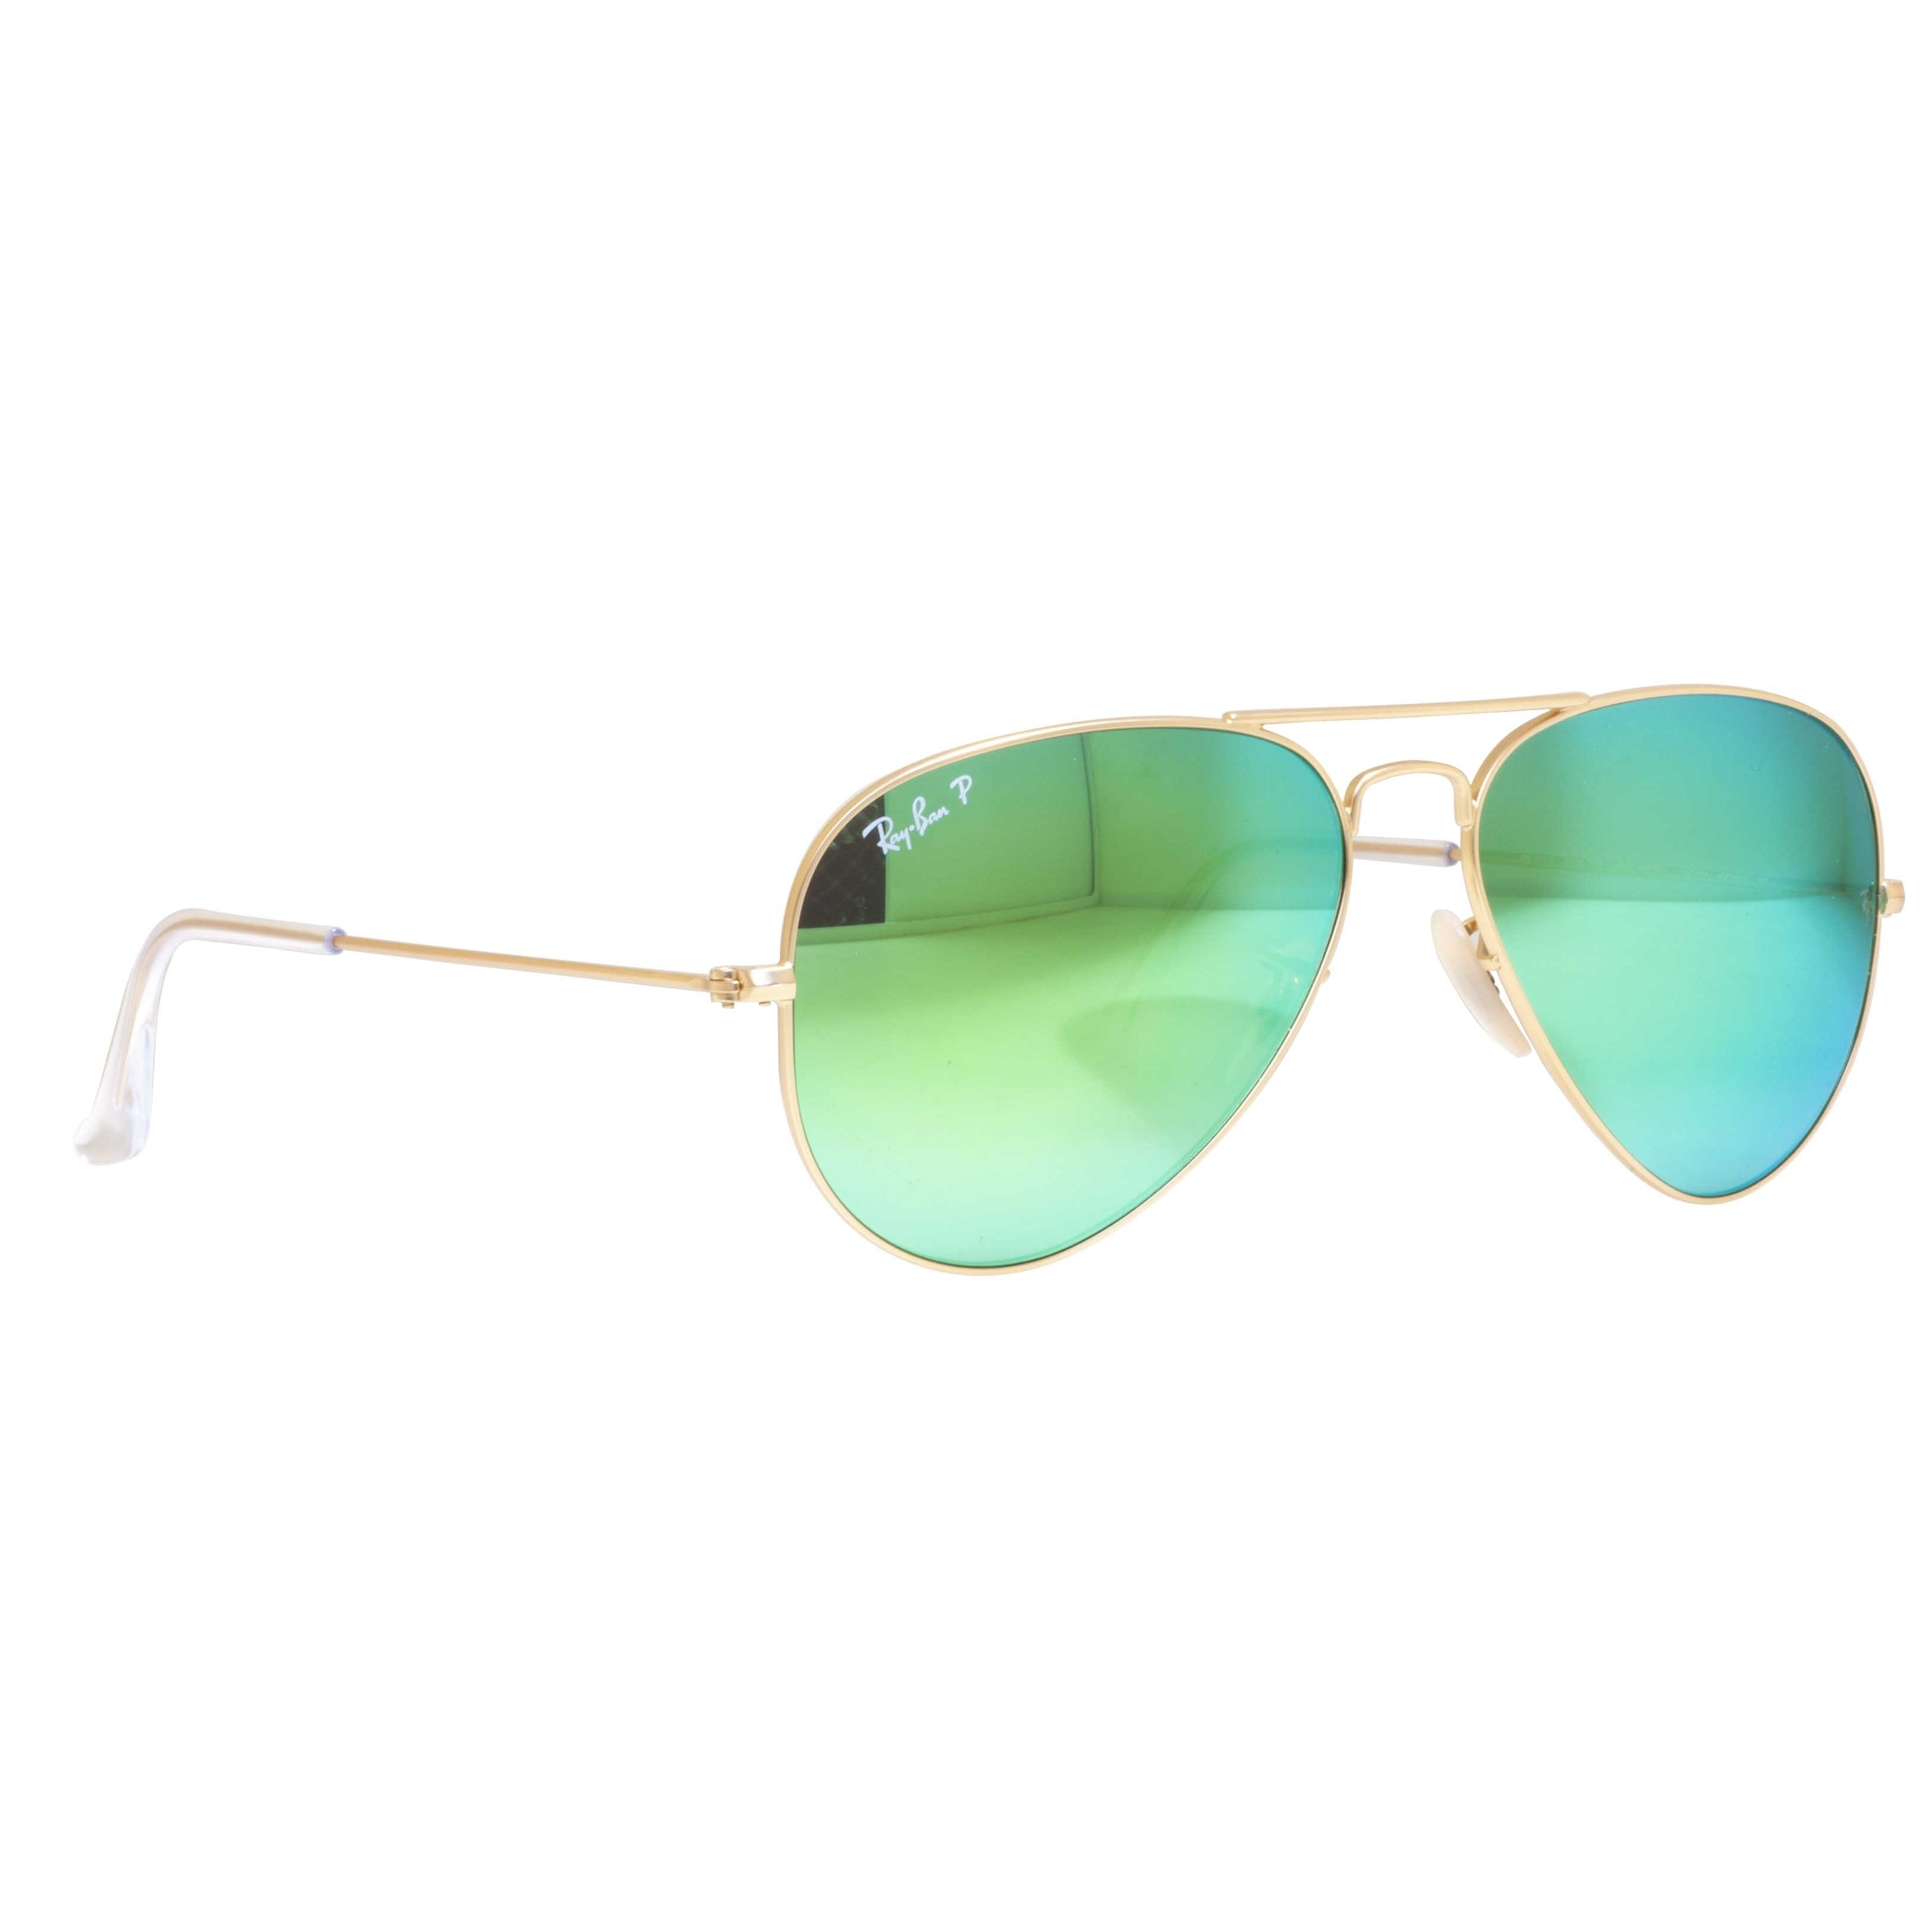 310ec33676c1e Shop Ray-Ban Aviator RB3025 Unisex Gold Frame Green Flash Polarized Lens  Sunglasses - Free Shipping Today - Overstock - 9375463